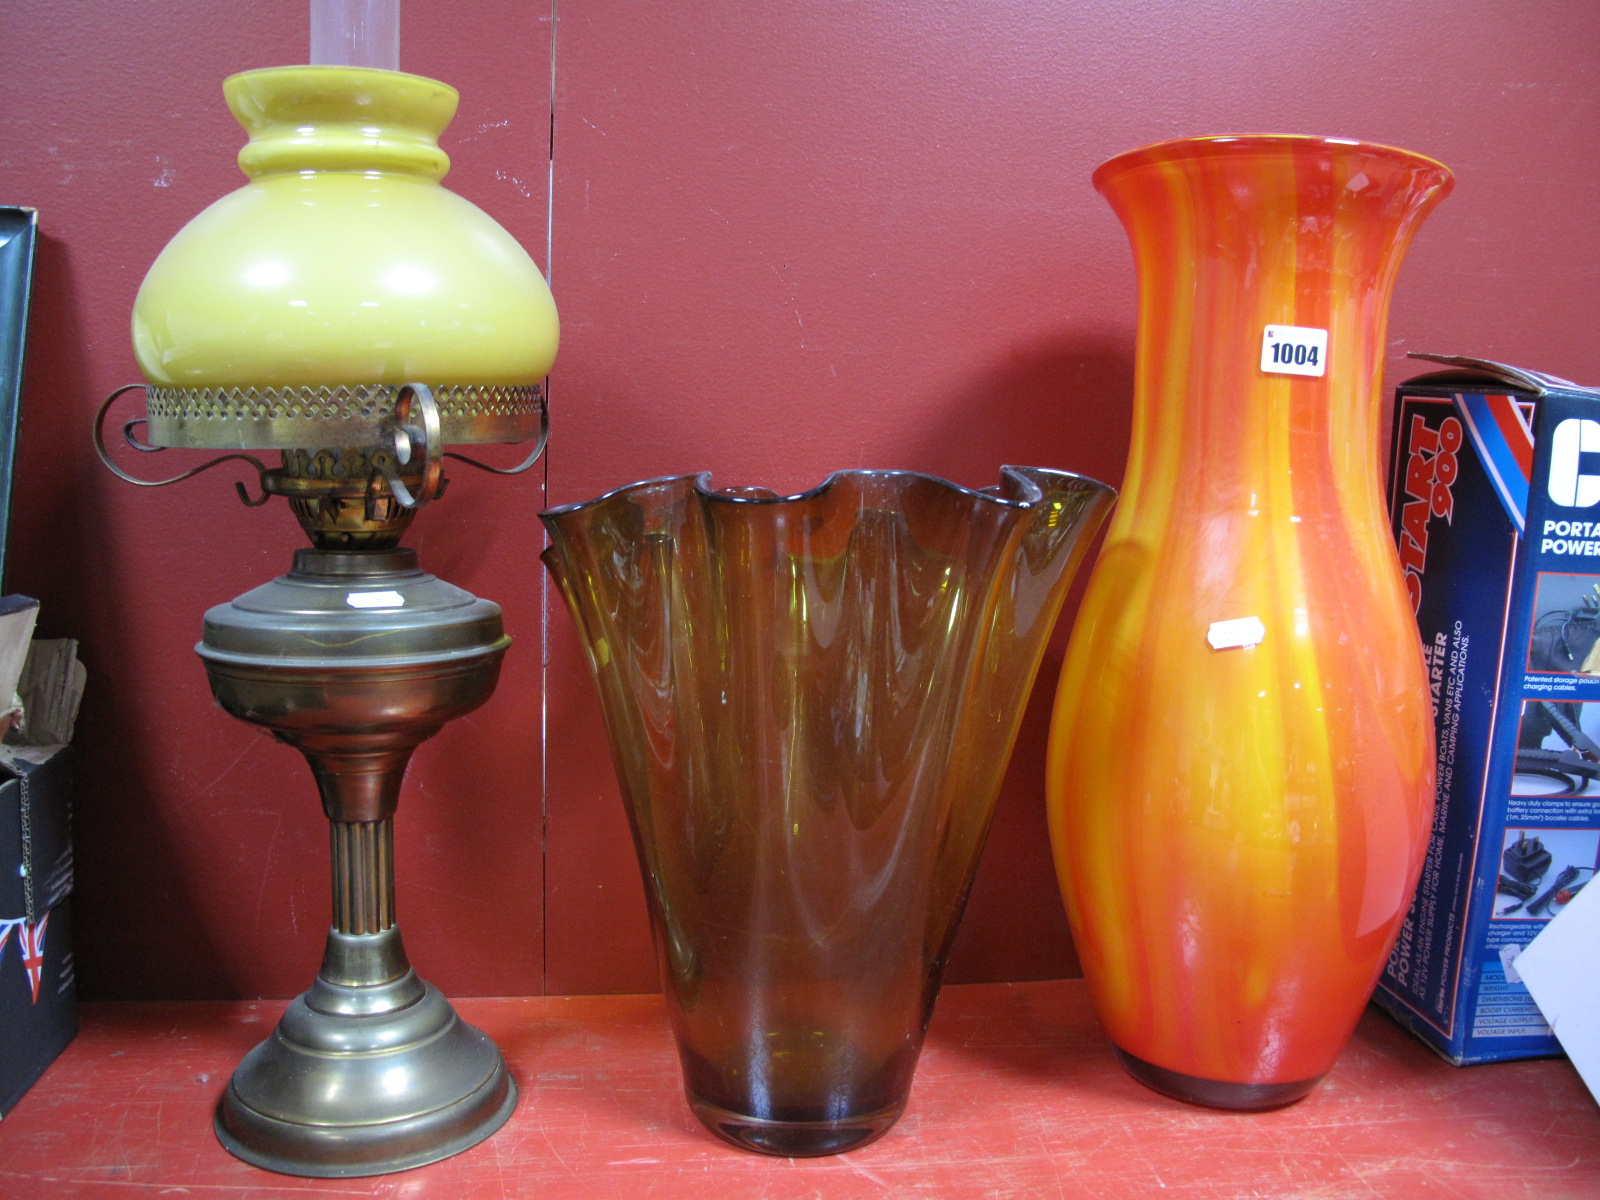 Lot 1004 - An Oil Lamp, red and amber streaked glass vase, yellow glass vase with wavy rim, 32cm high. (3)